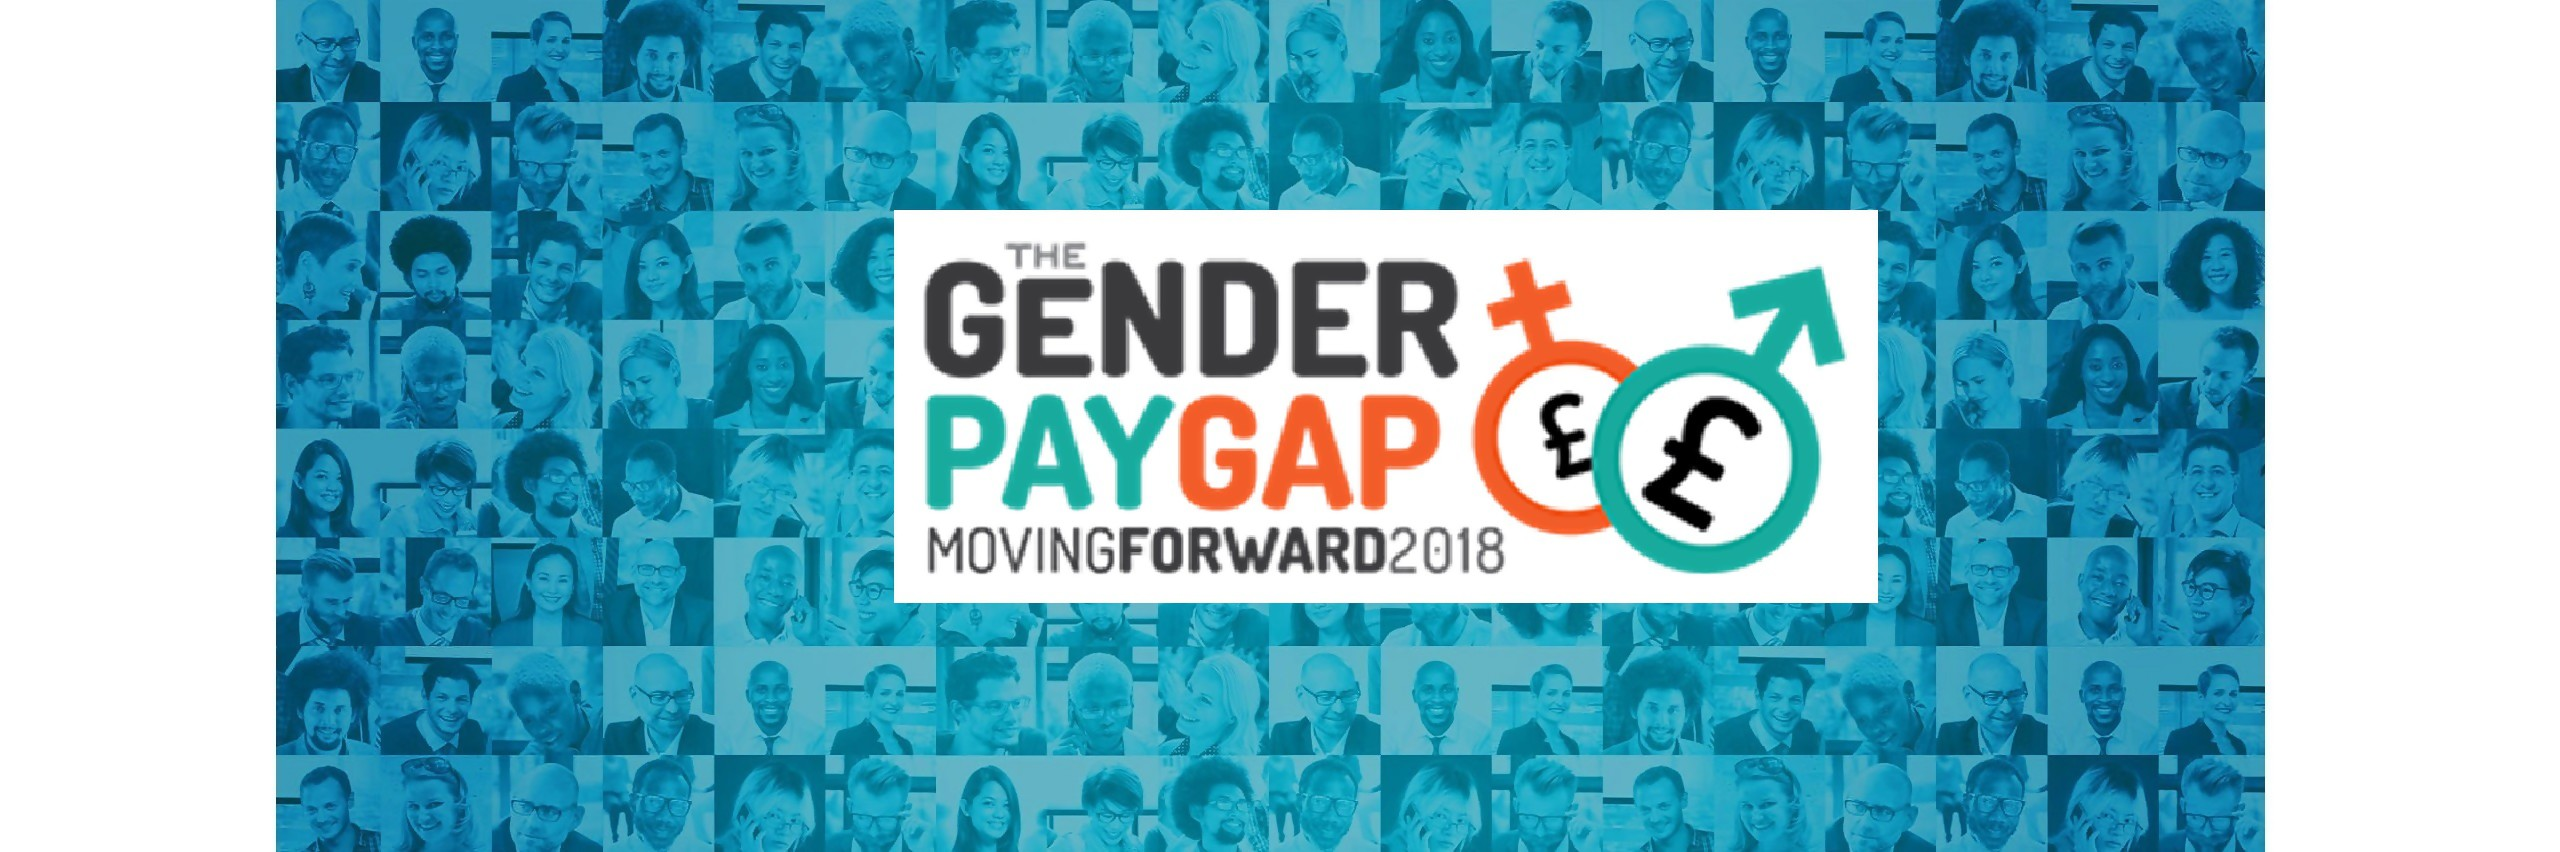 Gender Pay Gap 2018 London